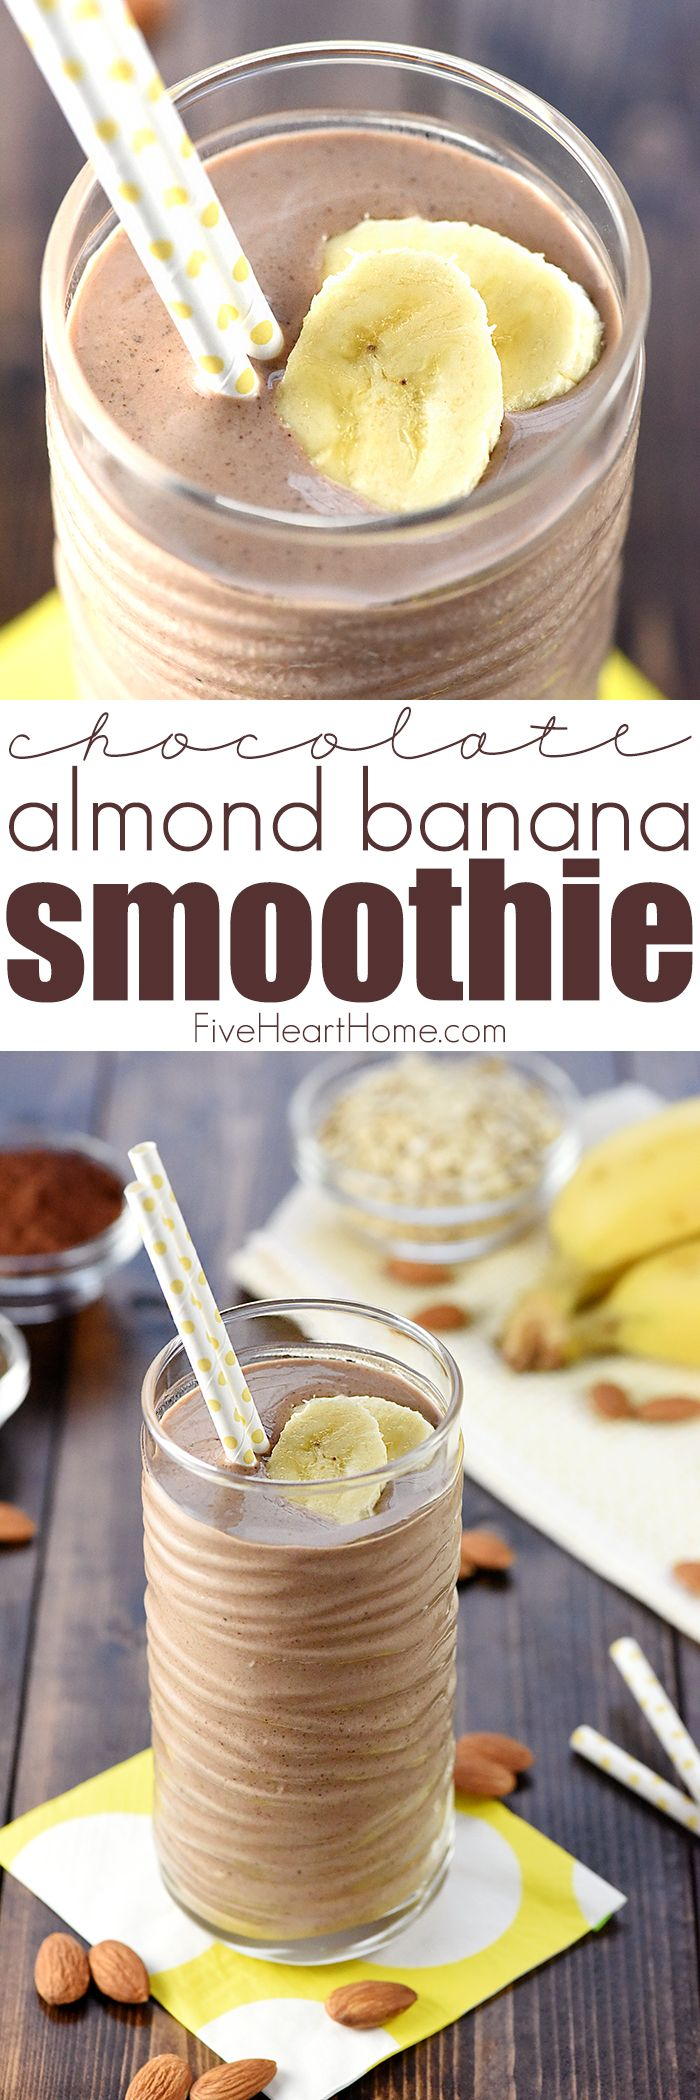 Healthy Chocolate Almond Banana Smoothie